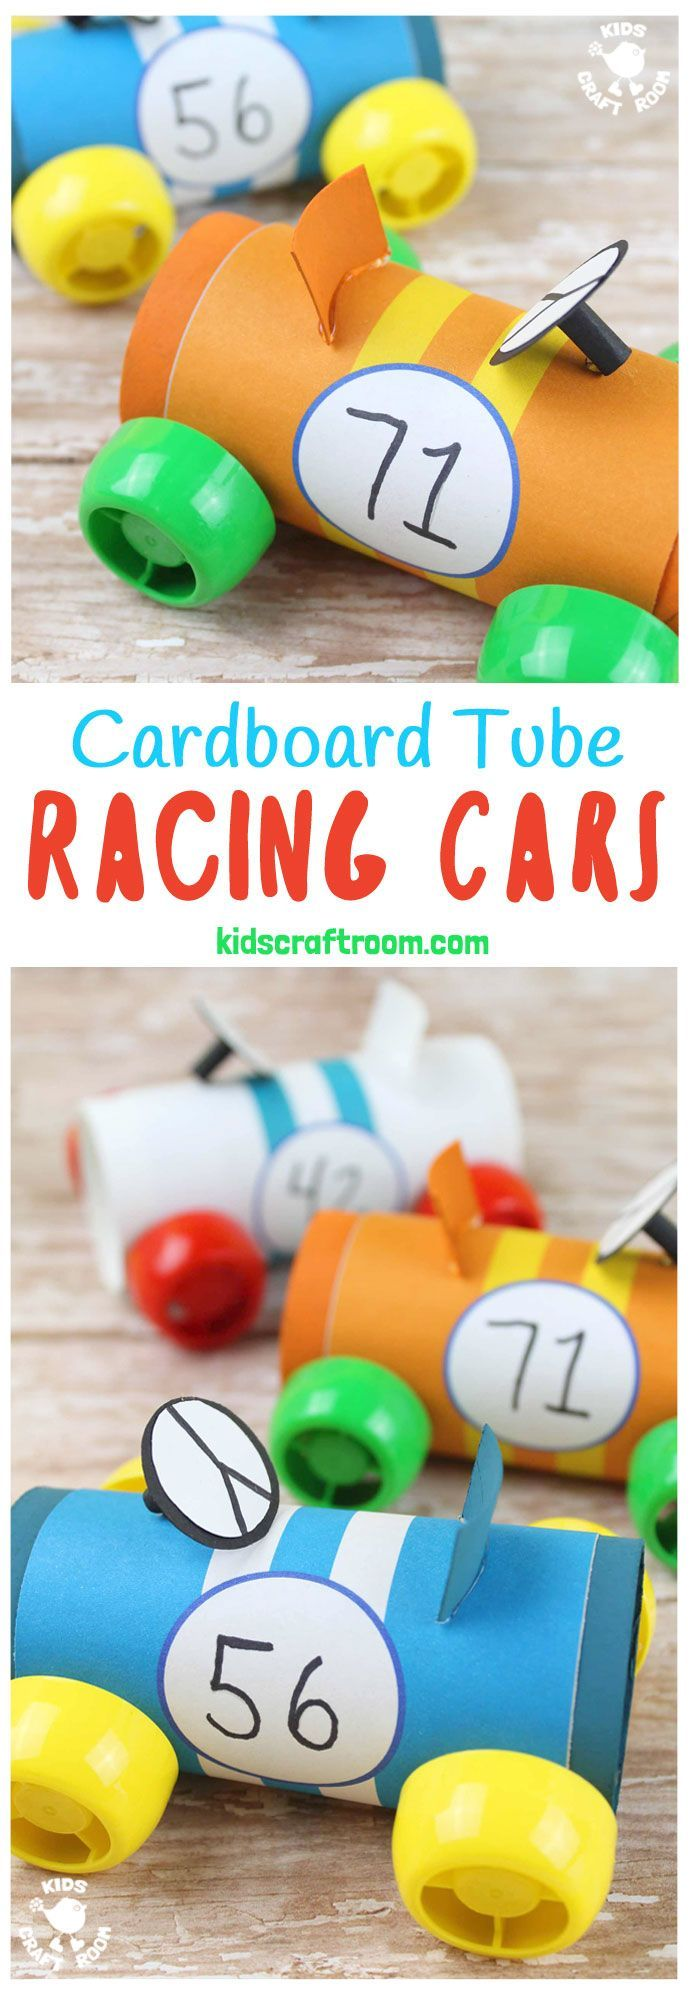 Cardboard Tube Racing Cars Epic Preschool Ideas Pinterest